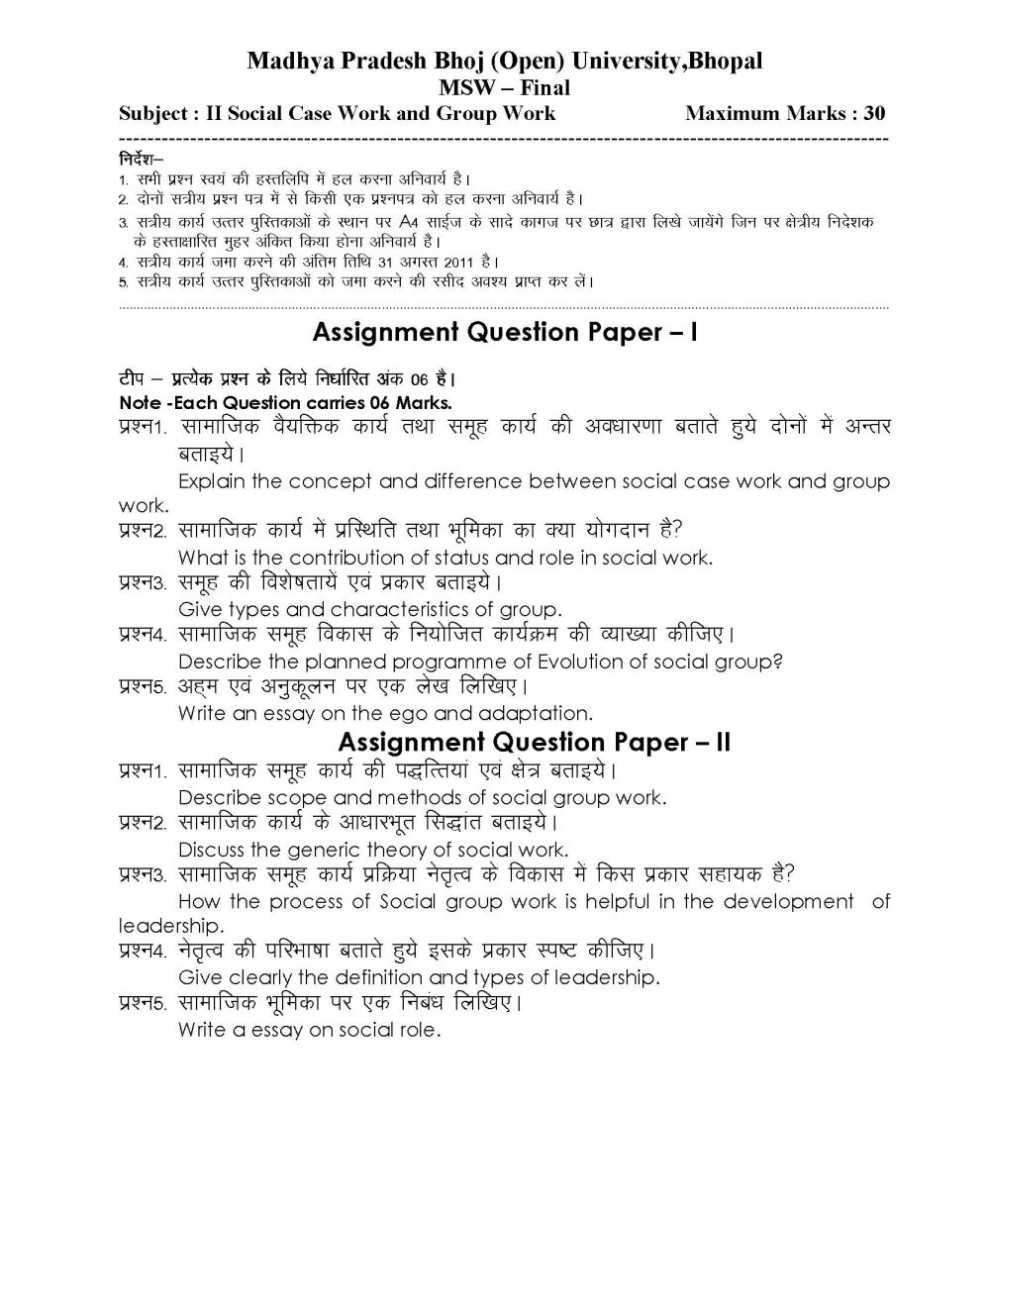 012 Bhoj University Bhopal Msw Definition Essays Surprising Essay Examples Friendship Define Writing Pdf Full